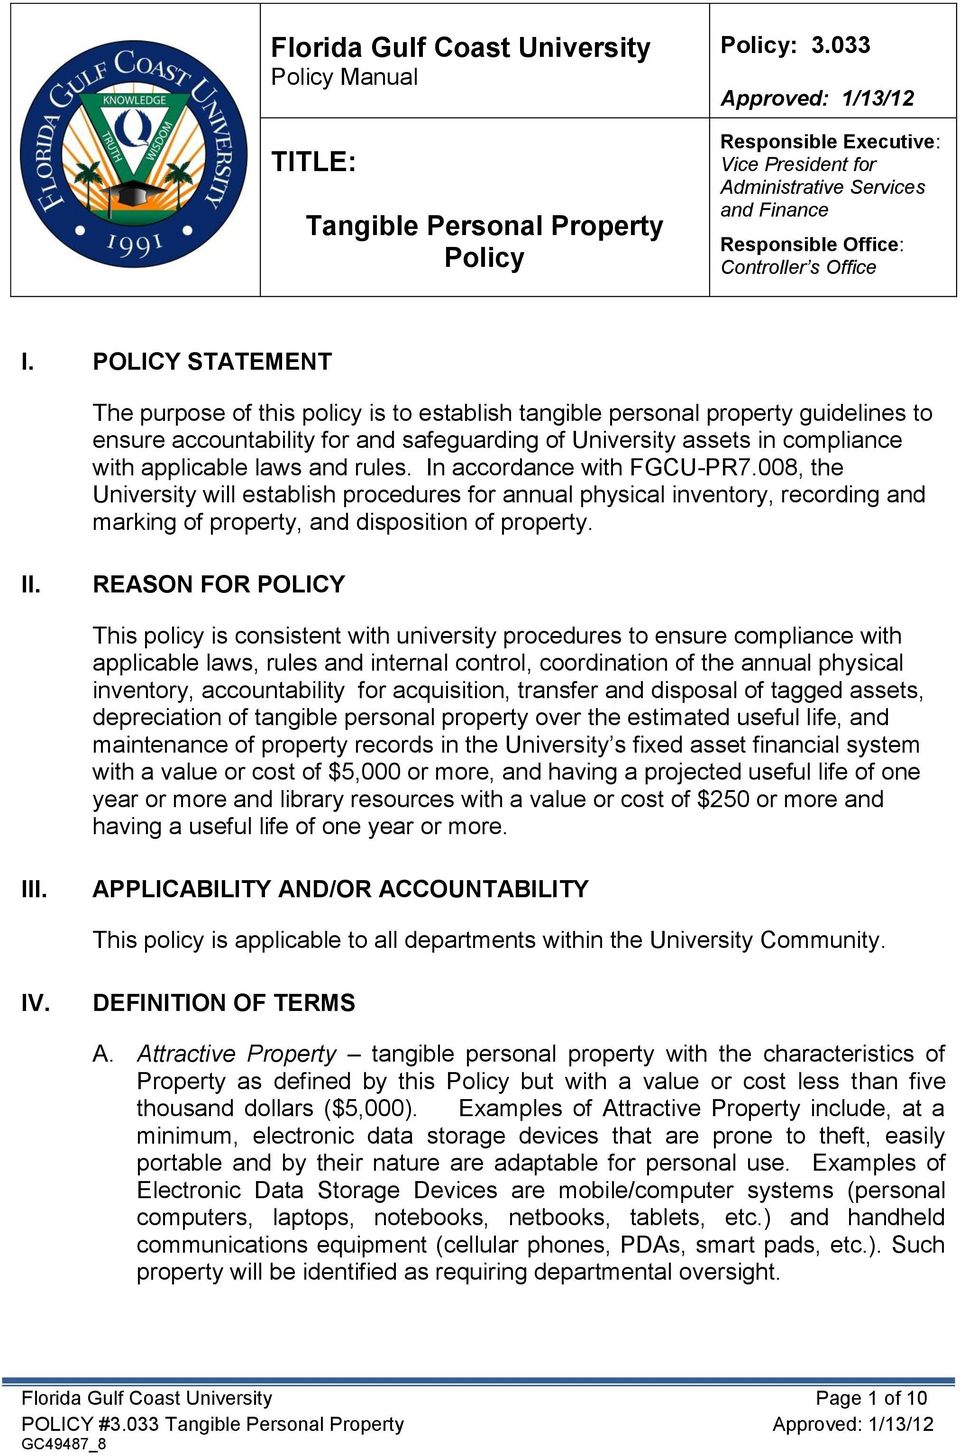 POLICY STATEMENT The purpose of this policy is to establish tangible personal property guidelines to ensure accountability for and safeguarding of University assets in compliance with applicable laws